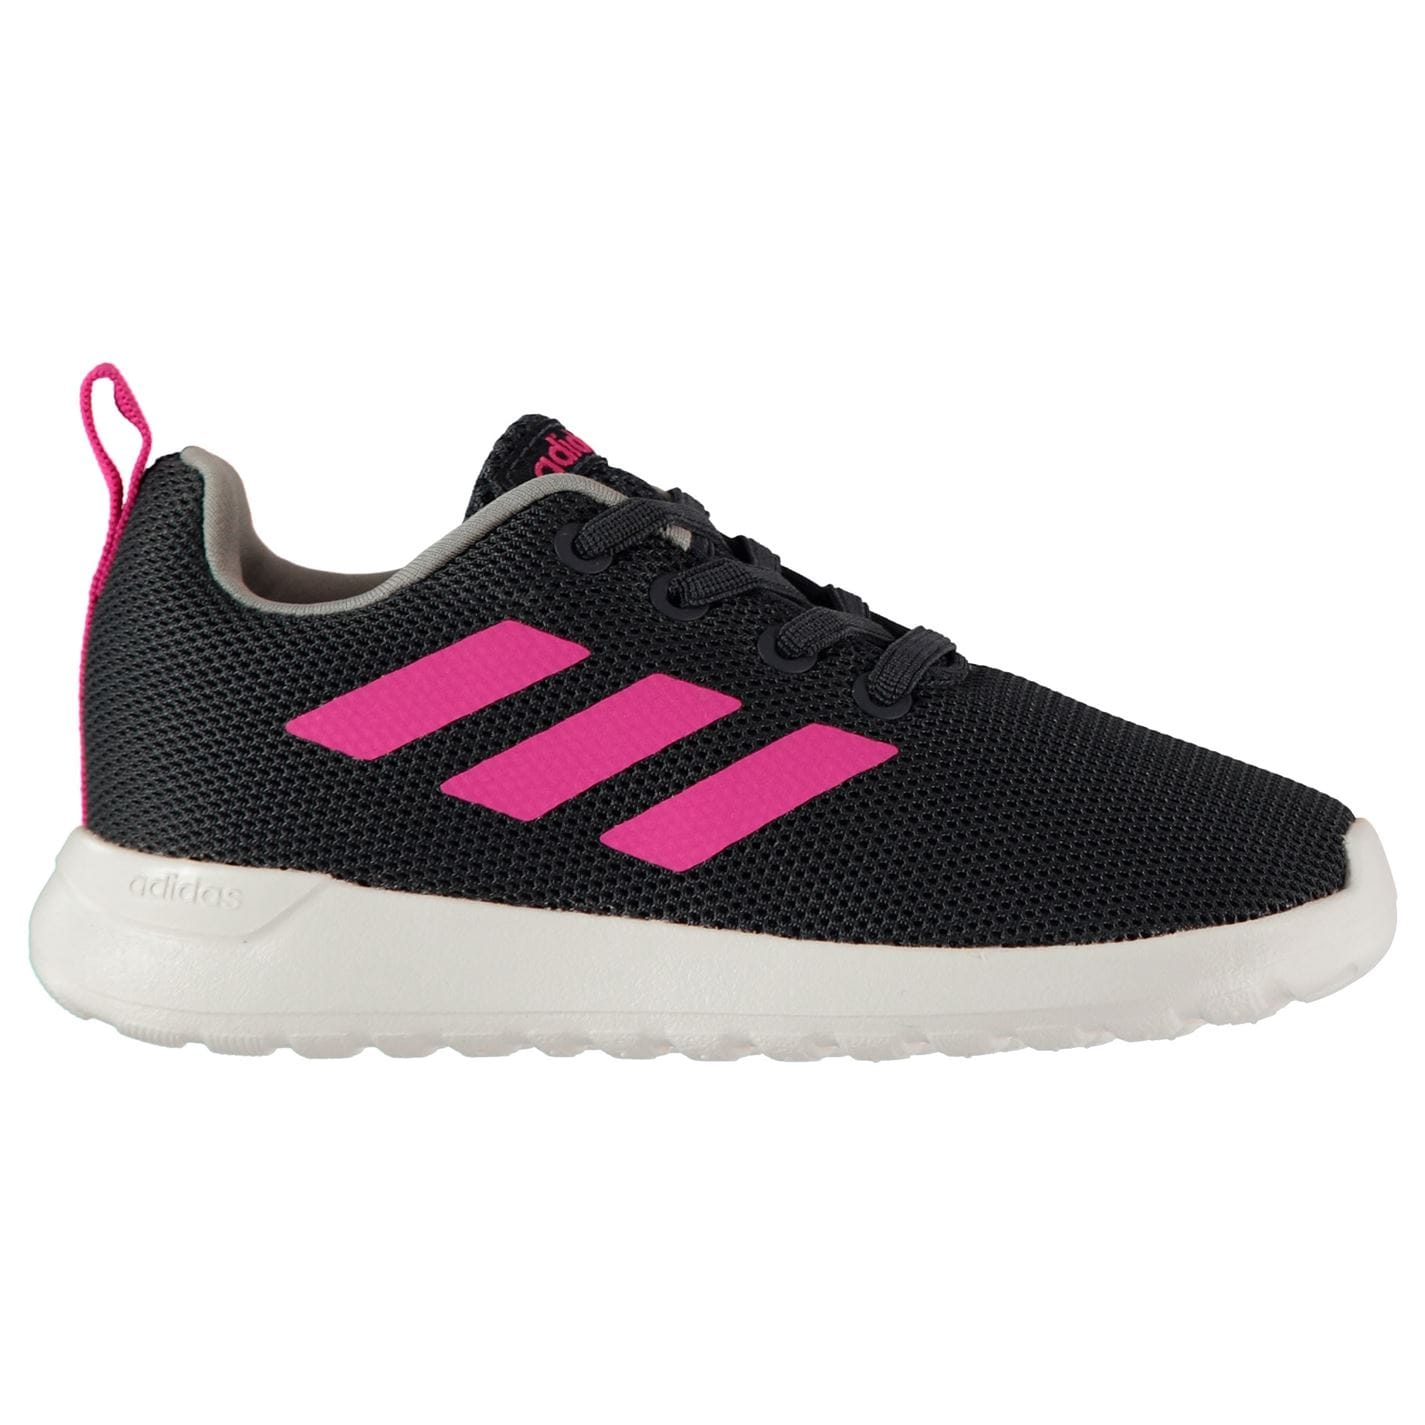 adidas Lite Racer Trainers Infant Girls Navy/Pink/Wht